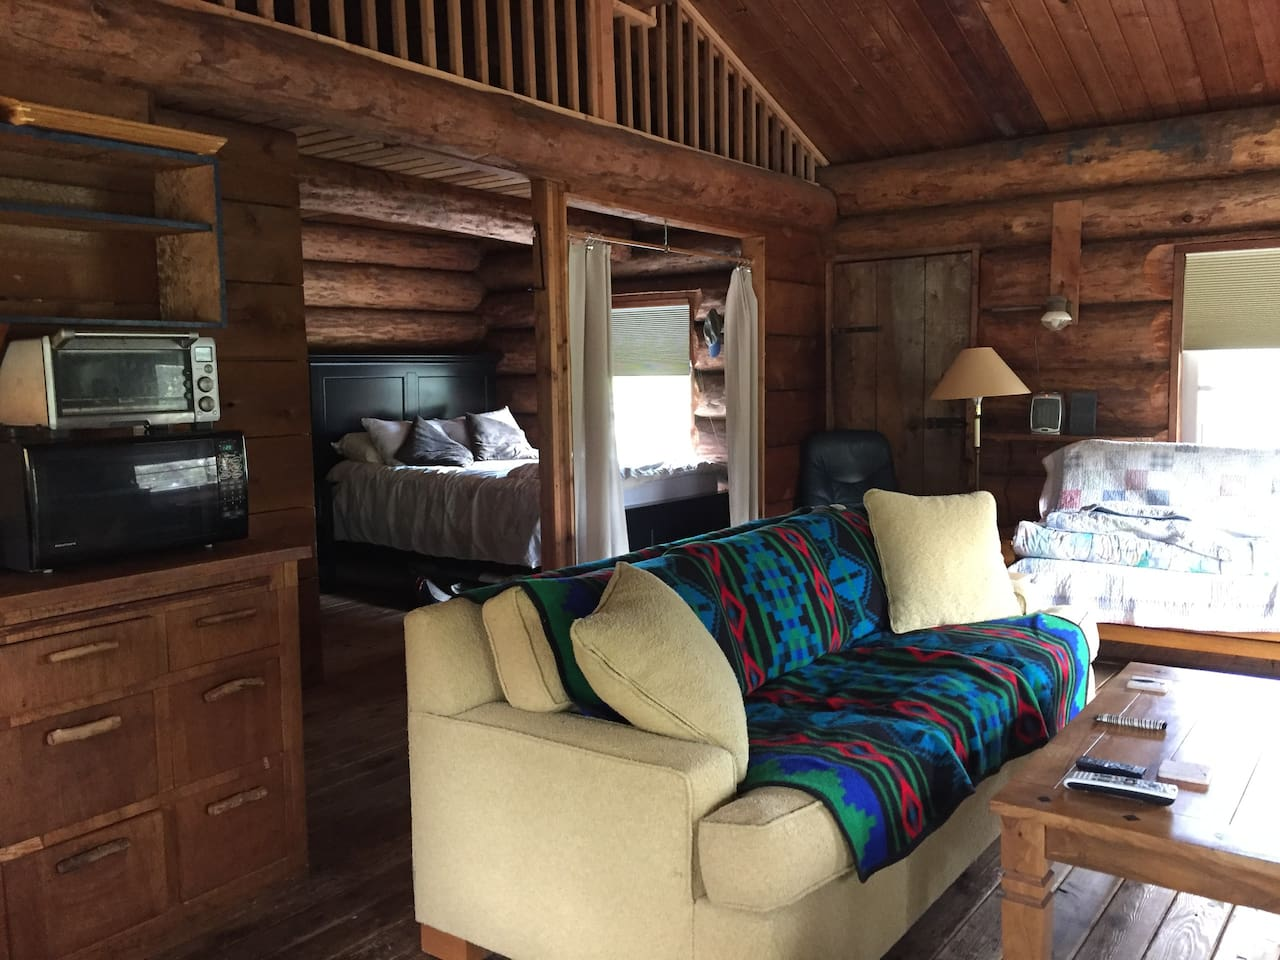 Stay in a real log cabin, 1 luxurious queen size bed plus 2 queen size sleeper sofas. Full kitchen and loft for the kids makes this the perfect family get away. Wifi and cell phone service included to stay connected while away.